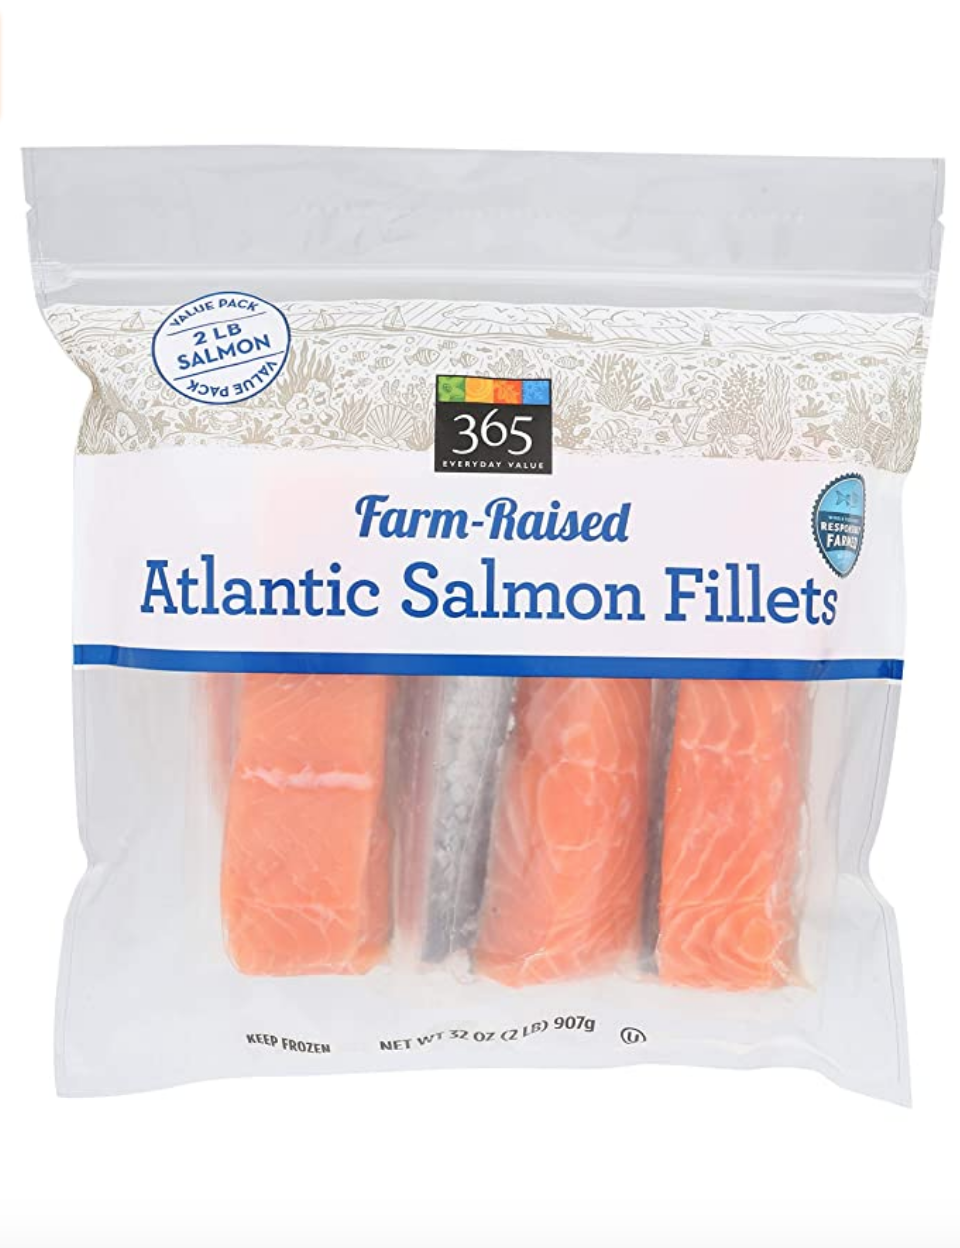 """<p><a class=""""link rapid-noclick-resp"""" href=""""https://www.amazon.com/365-Everyday-Value-Atlantic-Fillets/dp/B07NRCDJNX/ref=sr_1_1_0g_wf?almBrandId=VUZHIFdob2xlIEZvb2Rz&dchild=1&fpw=alm&keywords=365+Everyday+Value%2C+Farm-Raised+Seafood+Value+Pack%2C+Atlantic+Salmon+Fillets&qid=1594335567&s=grocery&sr=1-1&tag=syn-yahoo-20&ascsubtag=%5Bartid%7C10049.g.36302562%5Bsrc%7Cyahoo-us"""" rel=""""nofollow noopener"""" target=""""_blank"""" data-ylk=""""slk:BUY NOW"""">BUY NOW</a></p><p>We get it: Frozen fish seems like a weird item to put on a roundup of best sellers...but you haven't tried Whole Foods' frozen Atlantic Salmon Fillets yet. Just you wait.</p>"""